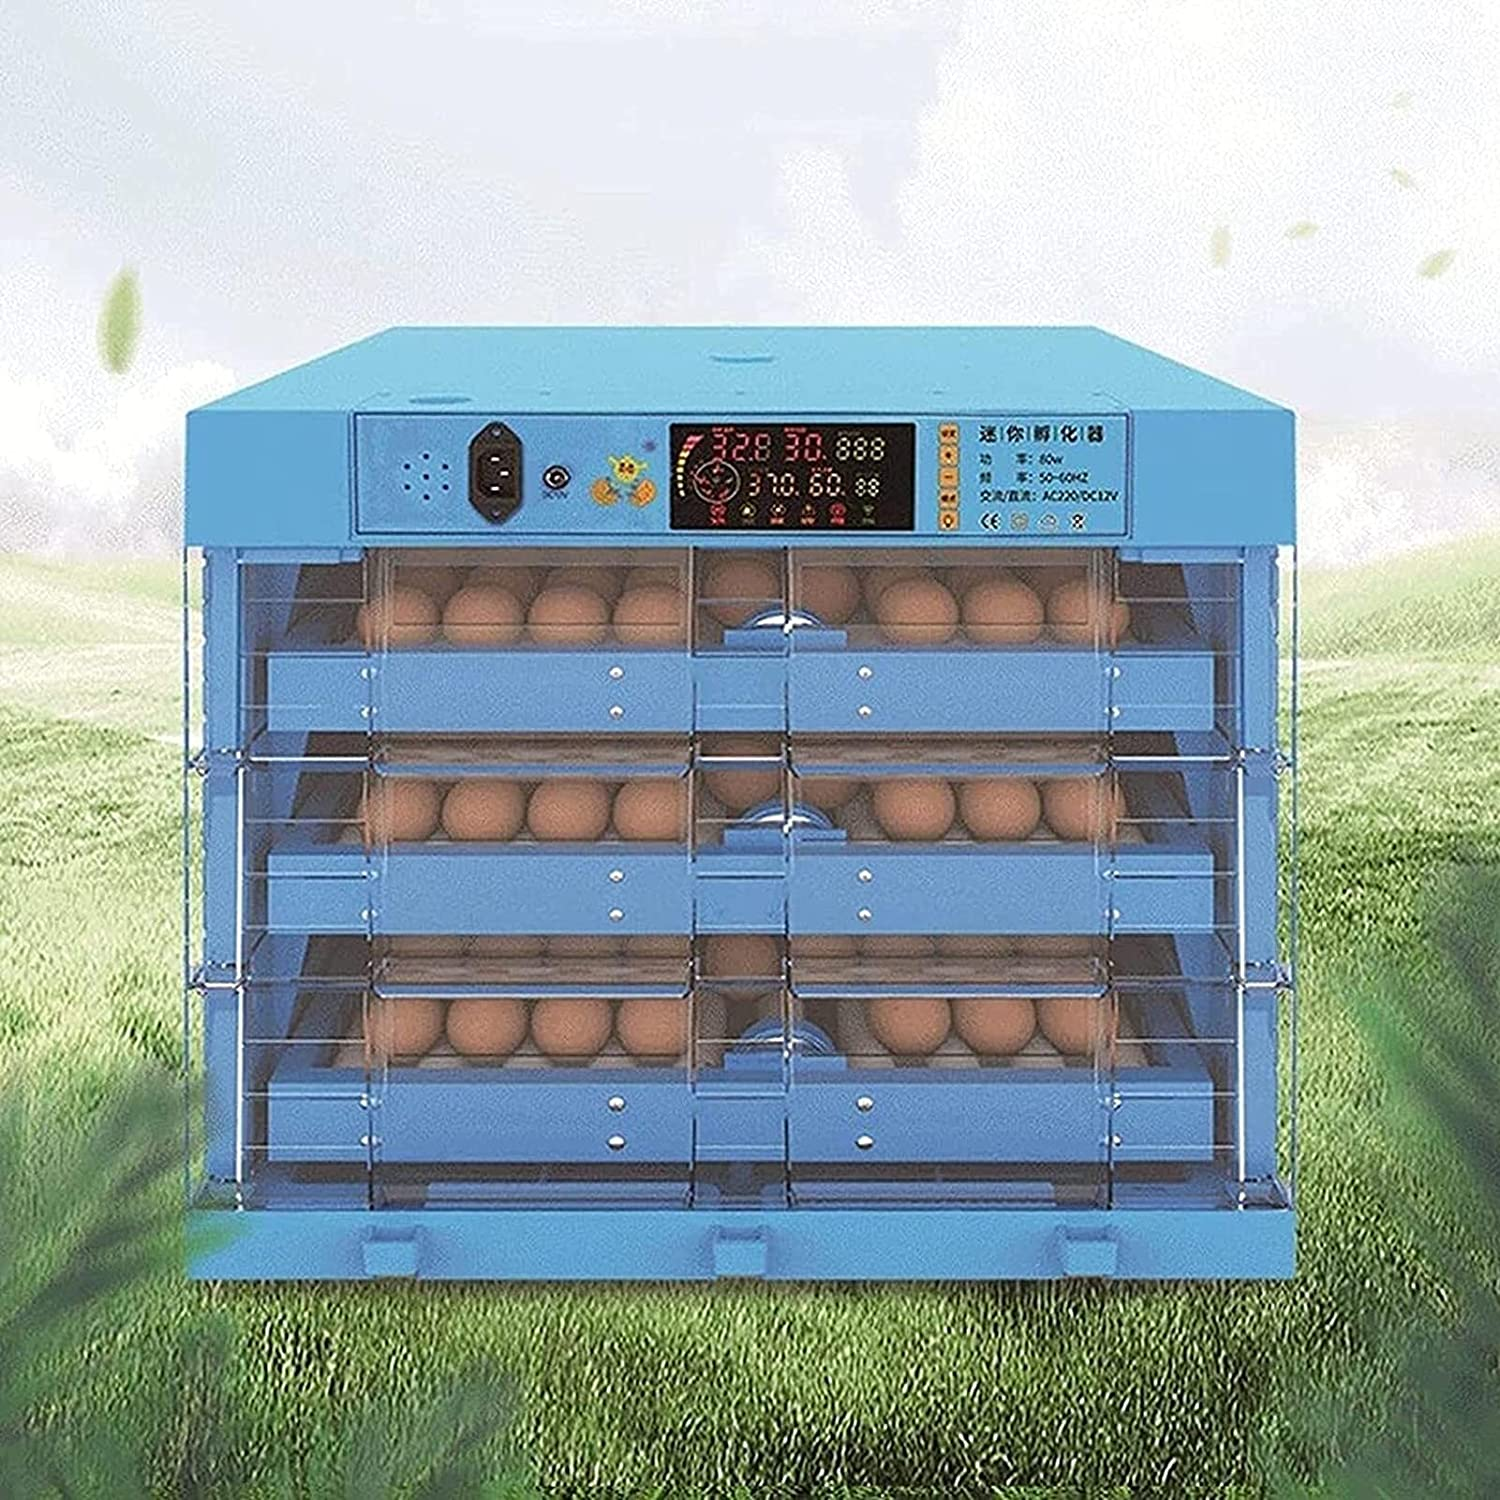 WENZHE Incubators Direct sale of manufacturer for Hatching Eggs Egg Incubator Incuba Cheap SALE Start Chicken